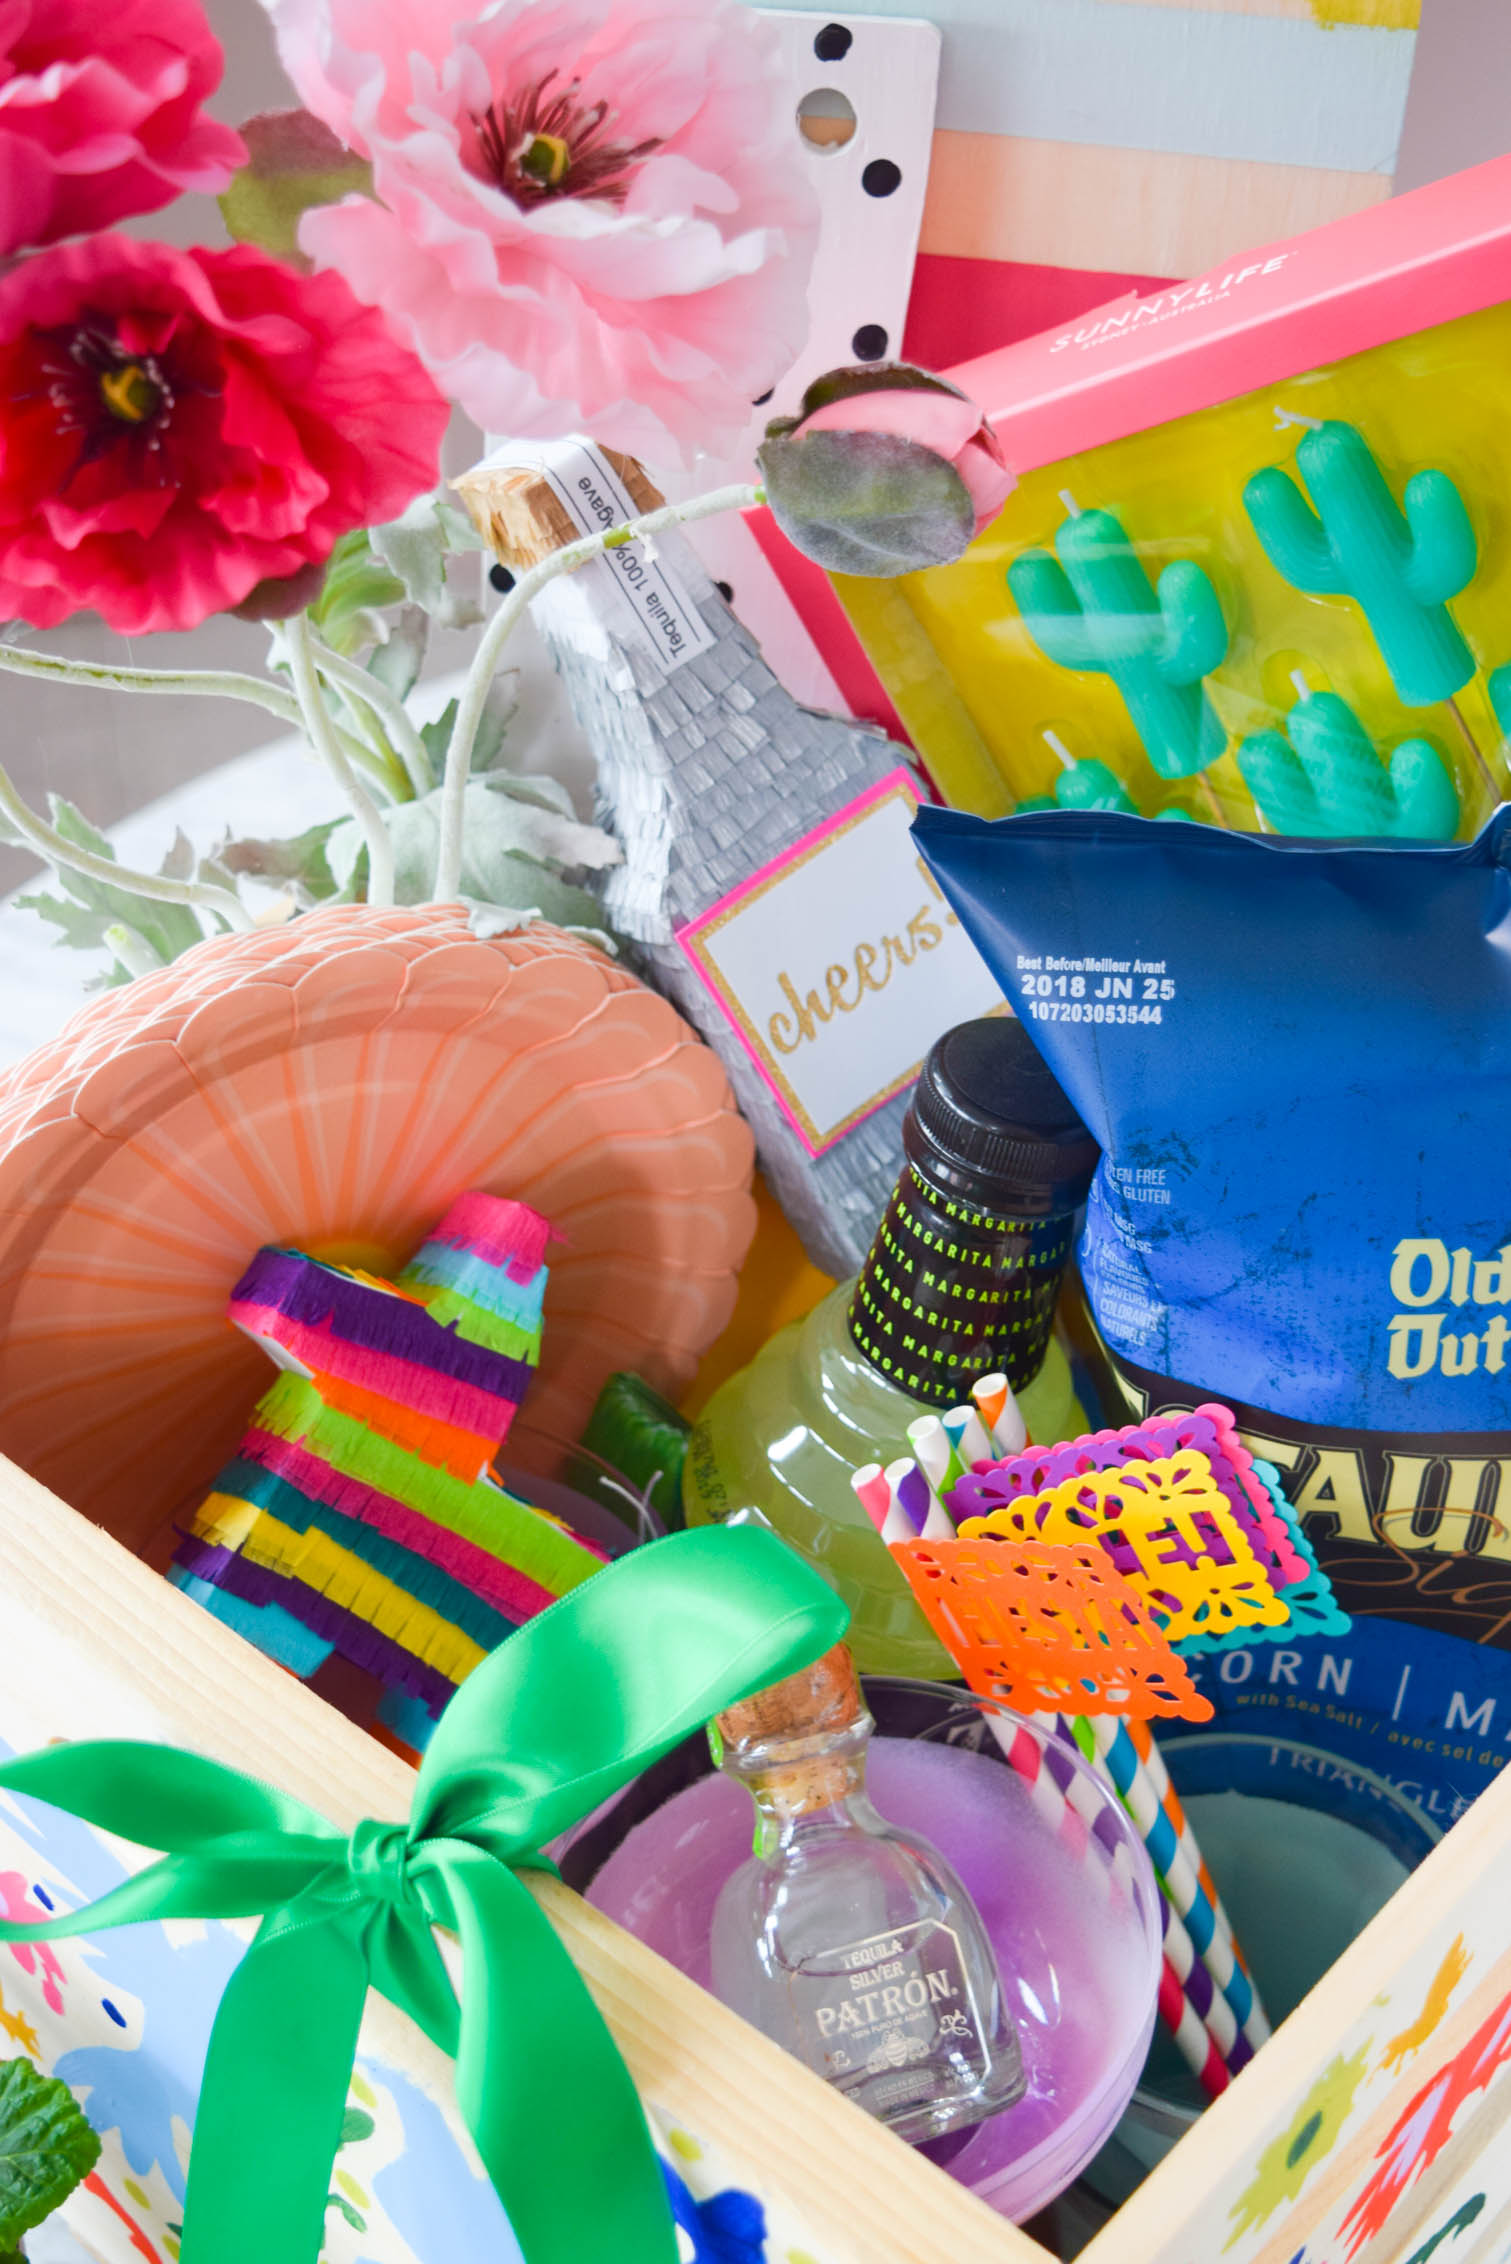 You've still got time to assemble a Cinco de Mayo party box, so what are you waiting for?! Grab yourself a @CratesandPallet crate to get started, and don't forget to fill it with all kinds of miniature pinatas and tasty treats.